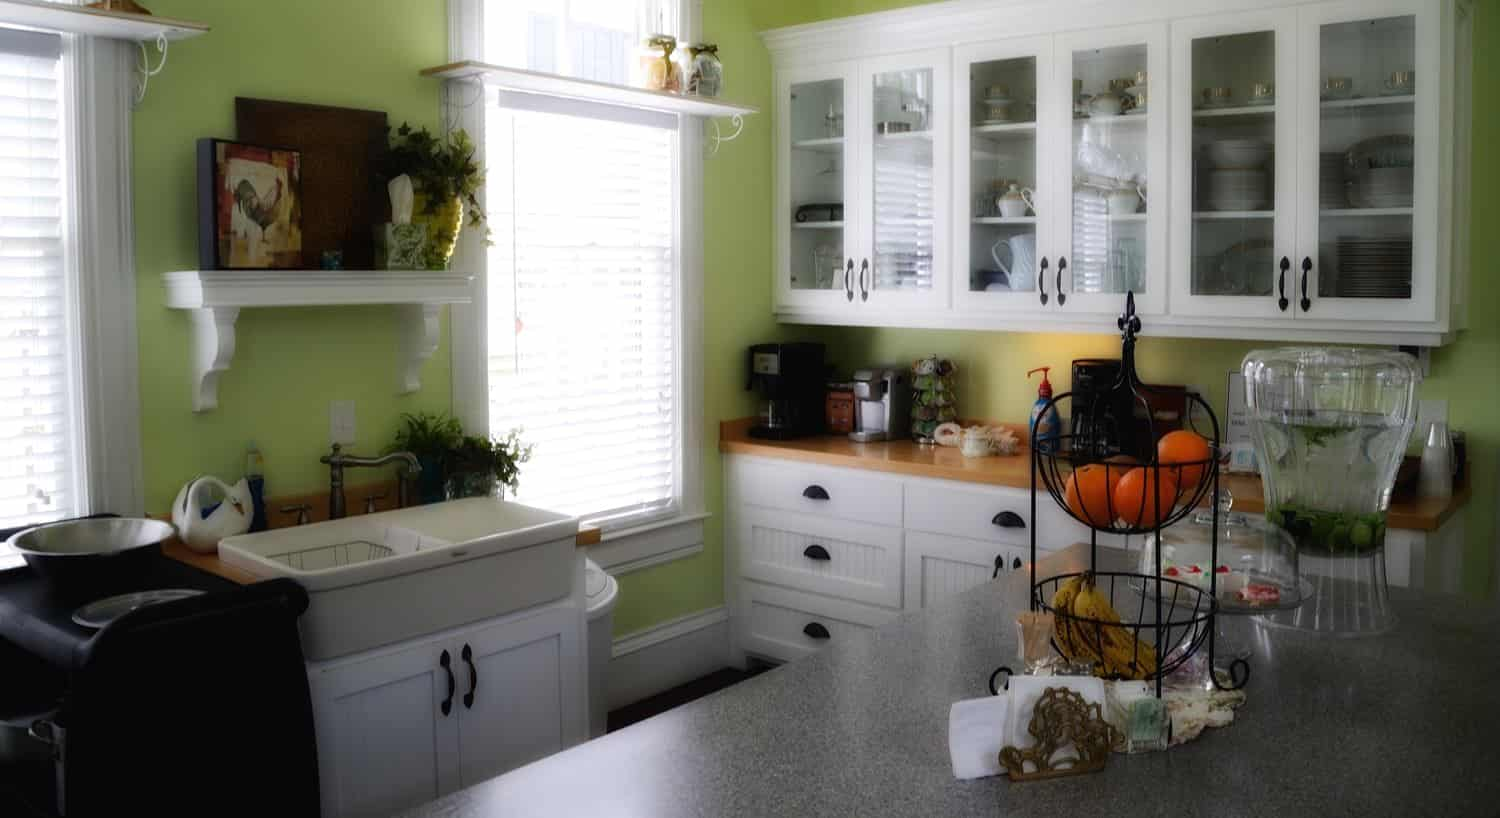 Kitchen with light green walls, white cabinets and shelves, wood tops, two windows and center island